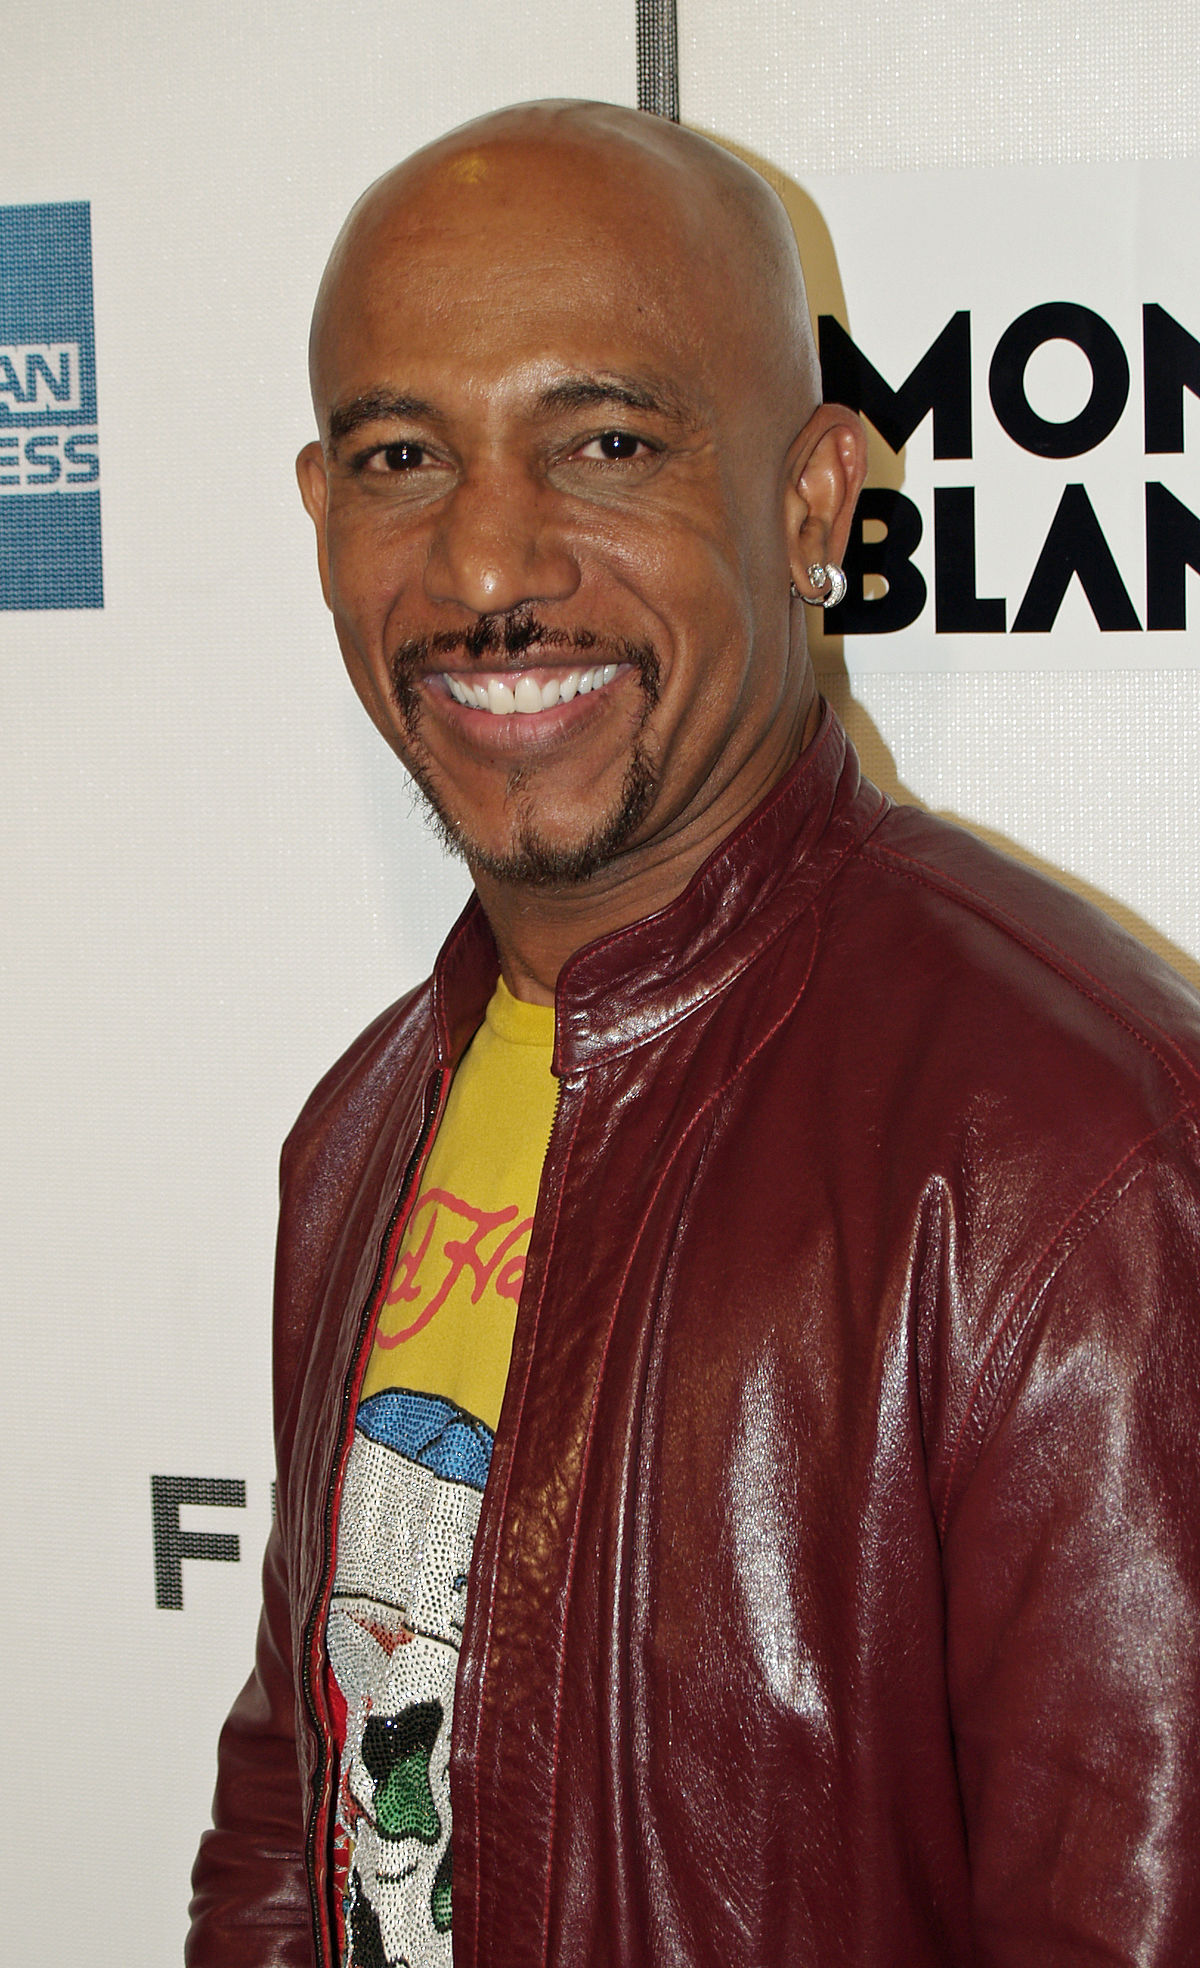 Montel Williams - Wikipedia